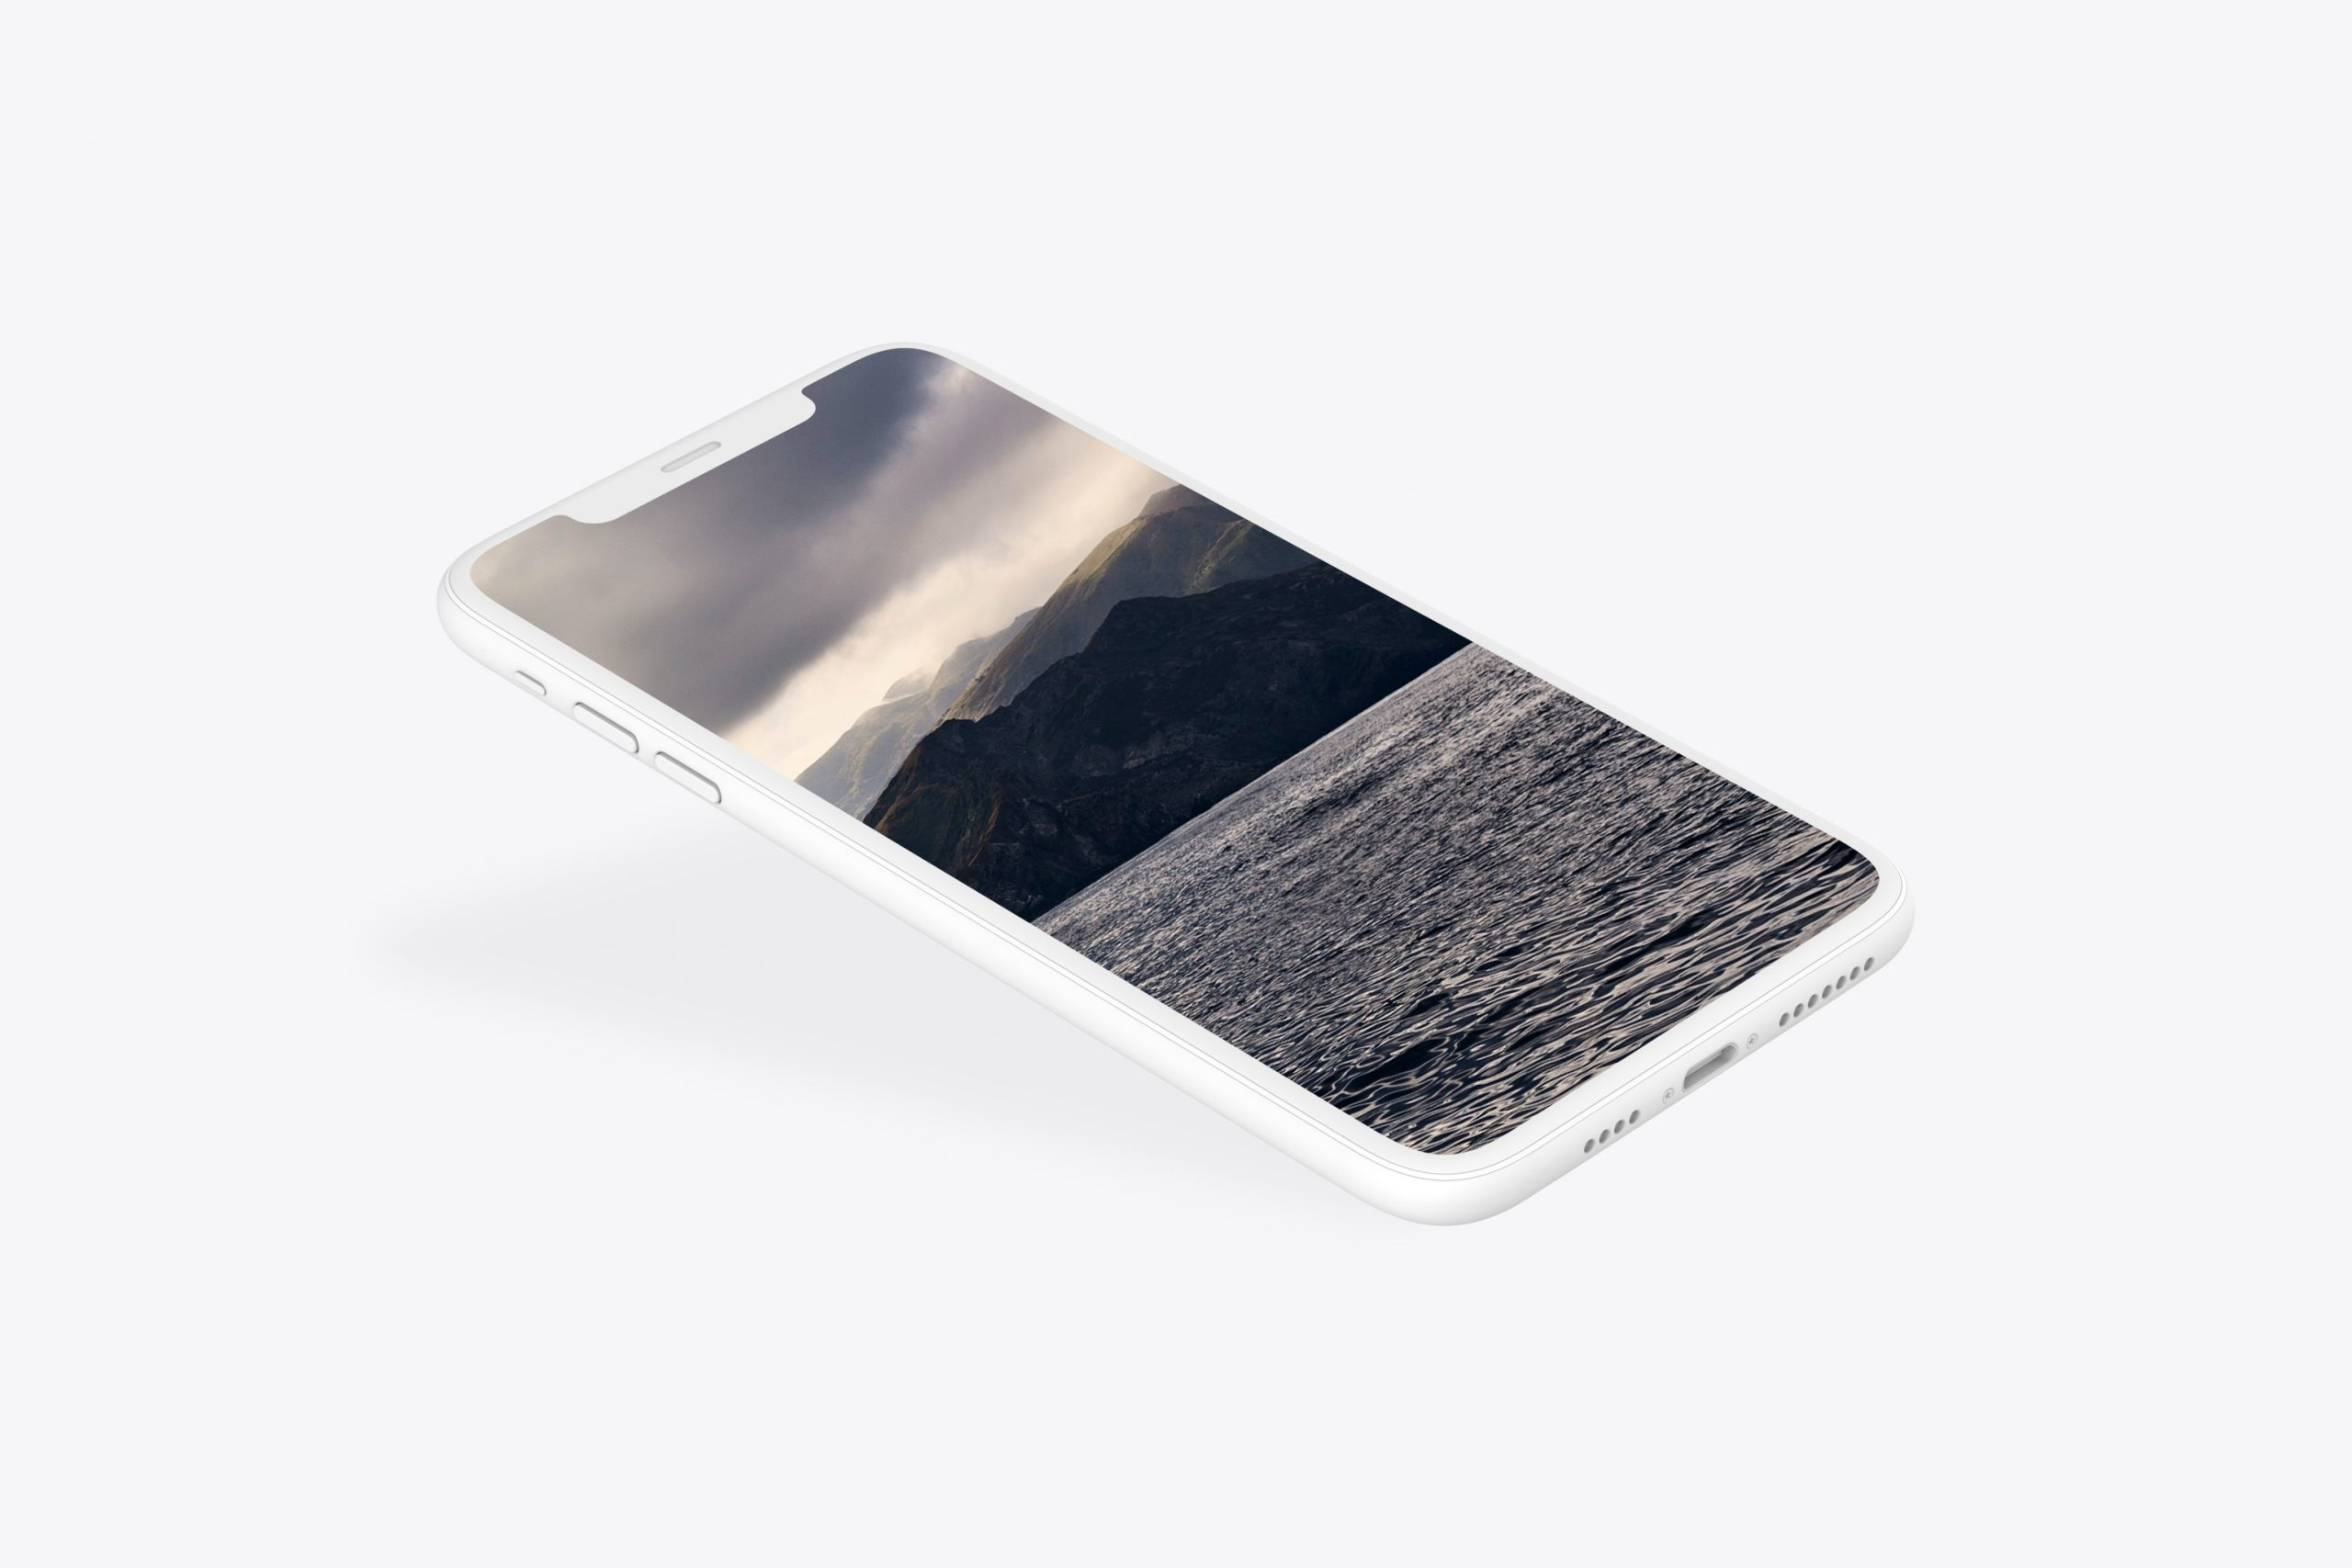 Catalina Iphone Wallpapers Optimized Pack